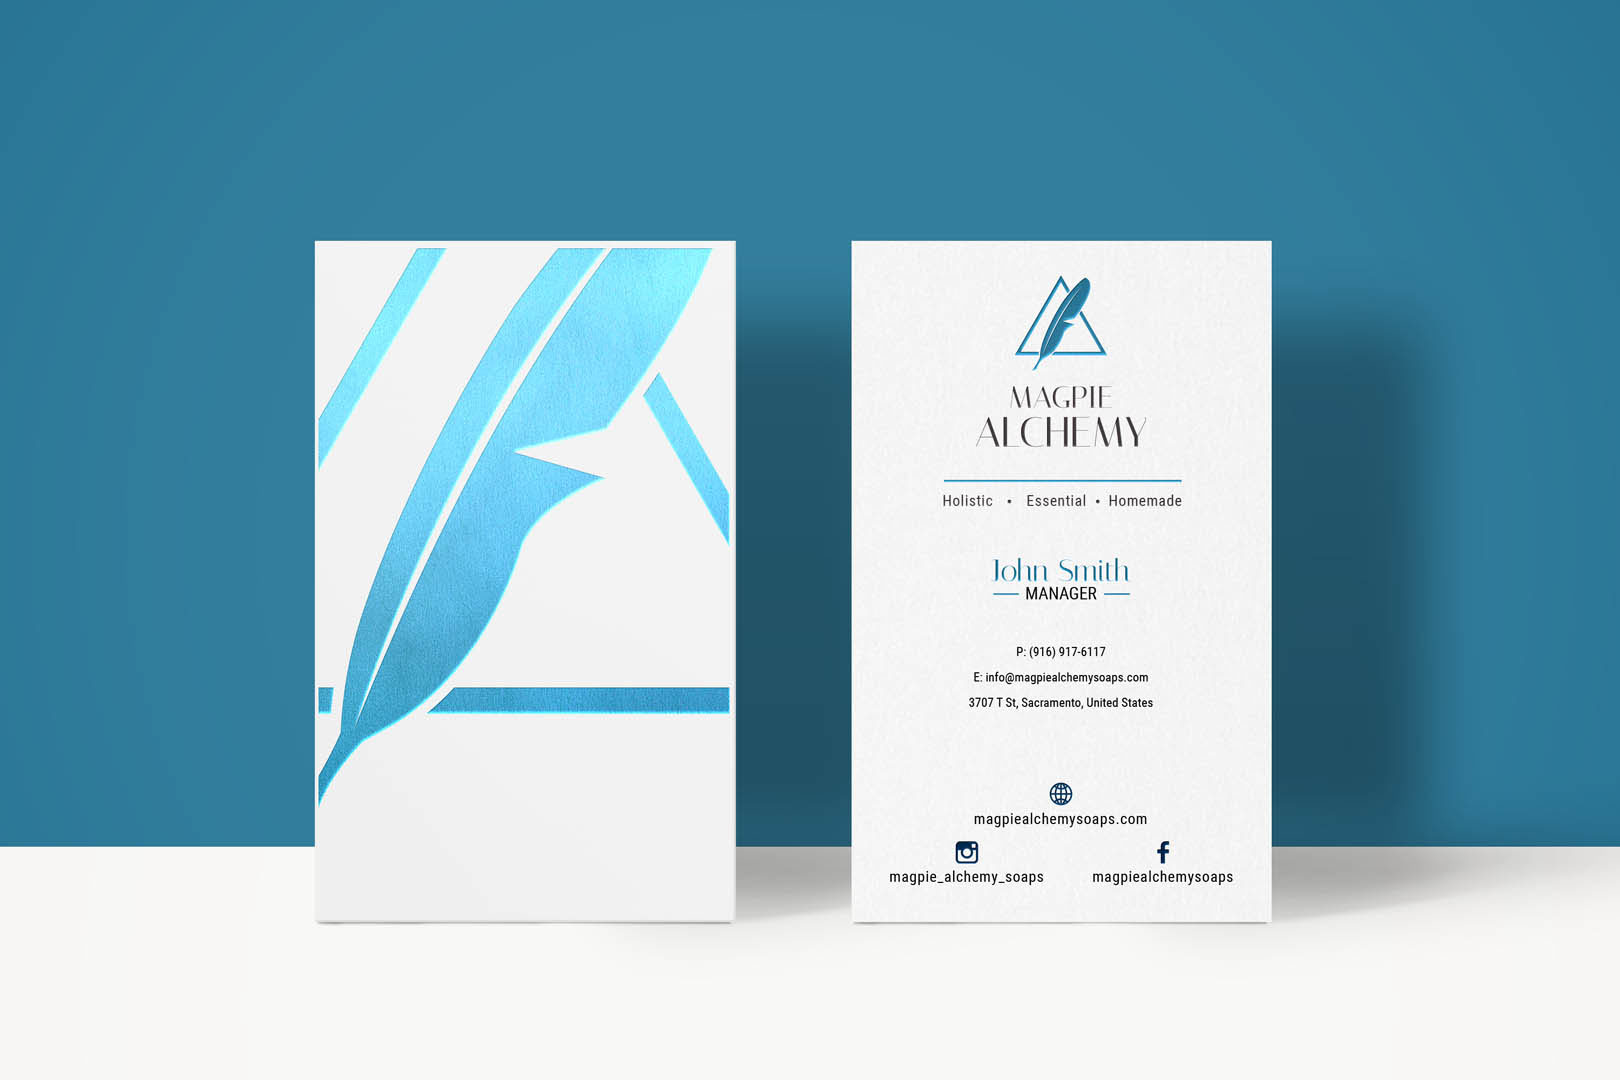 Magpie_Alchemy_Business_Card_mock__0003_Magpie_Alchemy_Business_Card_mock_v3